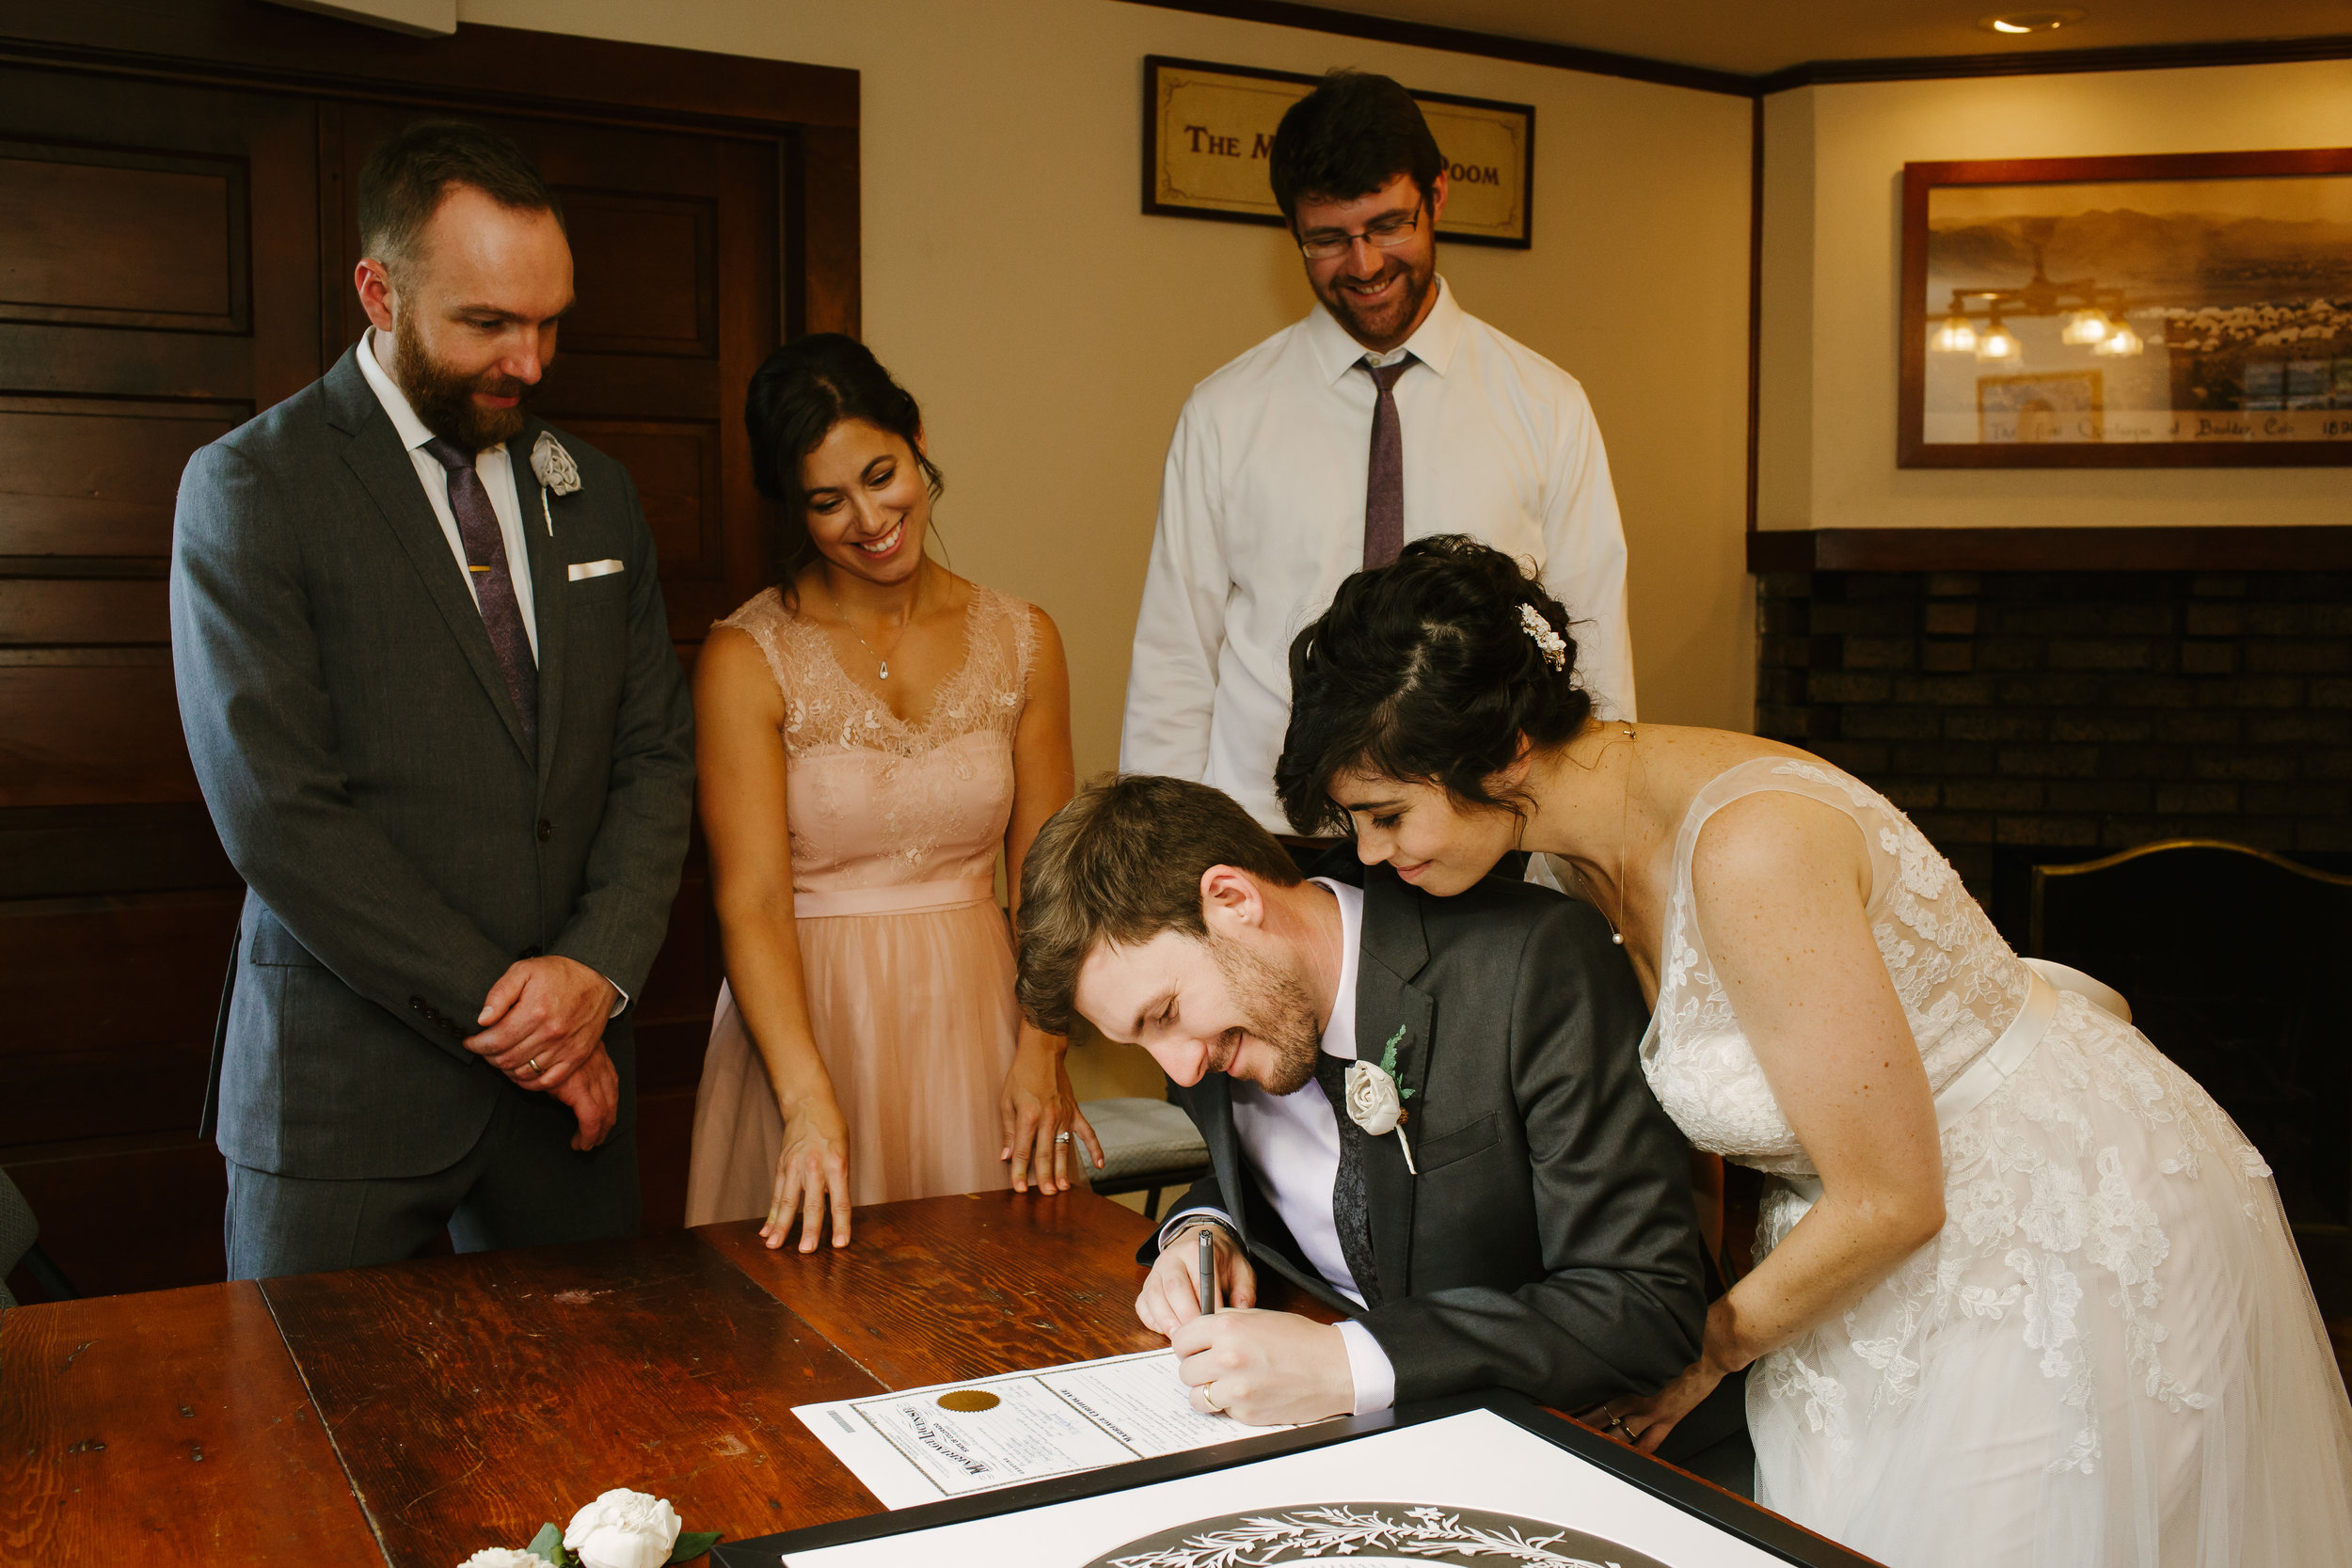 Signing Marriage License at Chautauqua Grand Assembly Hall